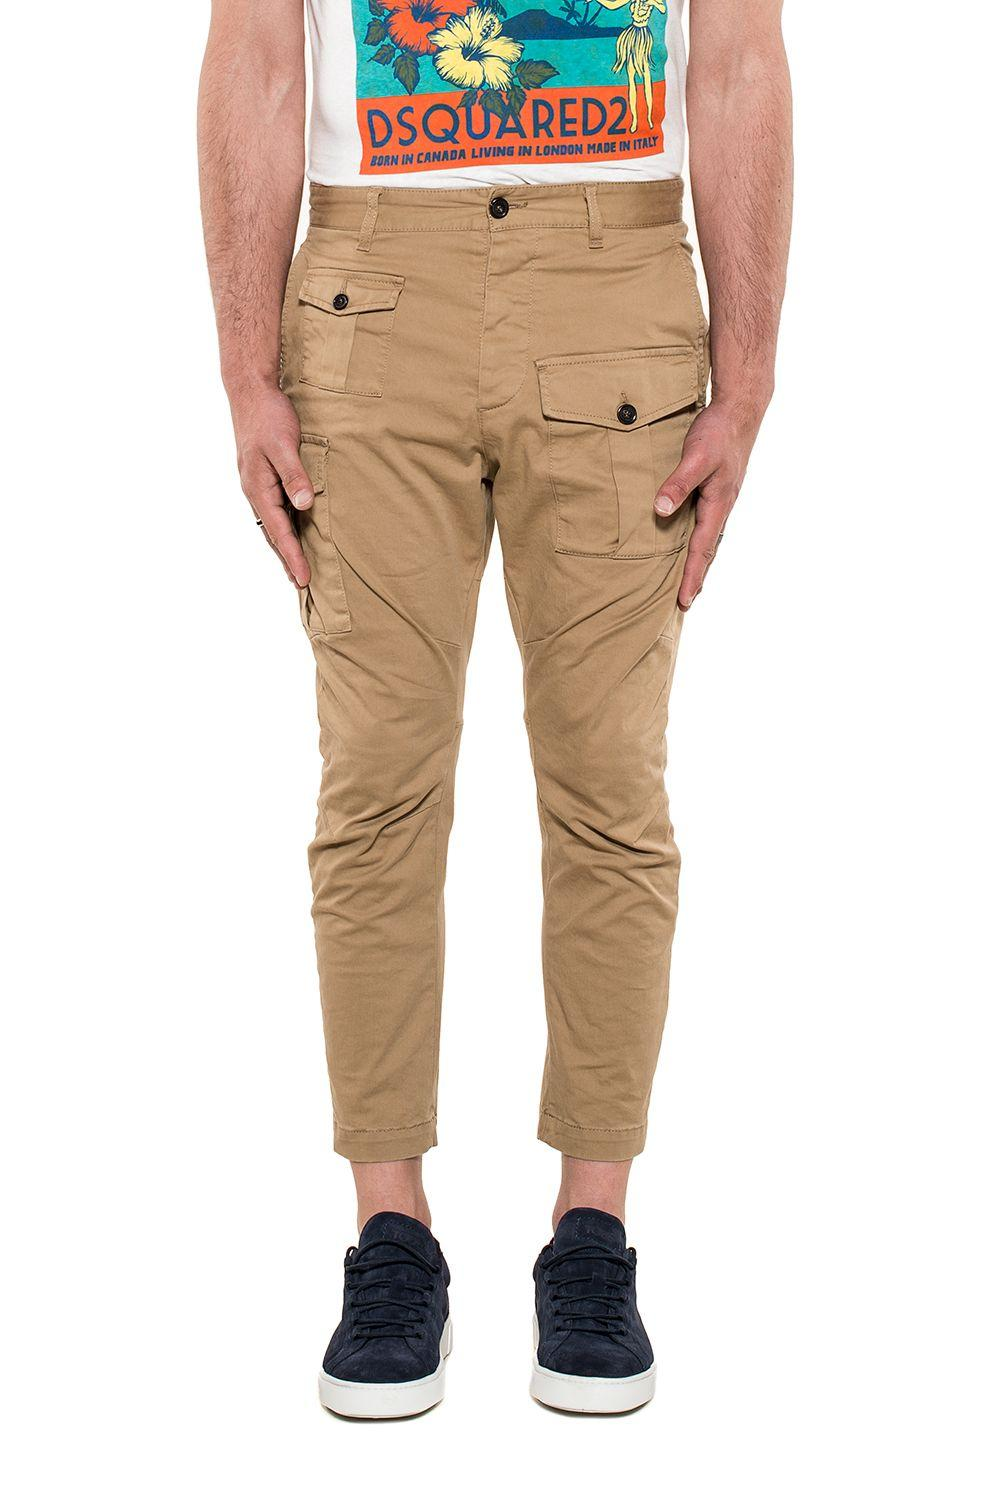 Dsquared2 Khakhi Cargo Trousers In Neutral